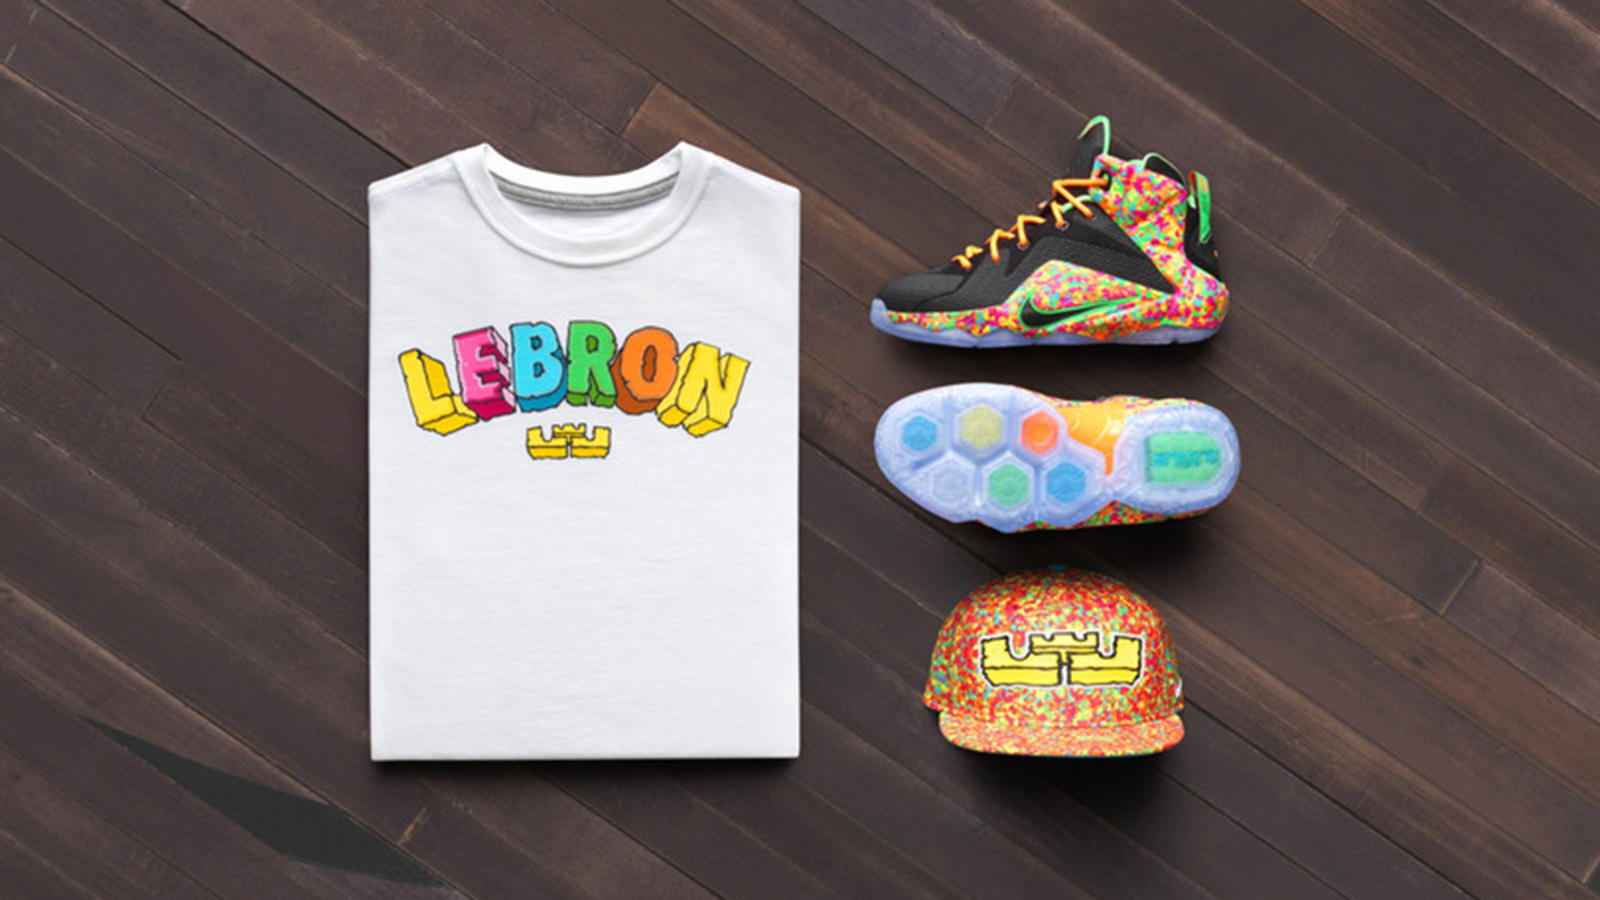 Lebron Nike Shirts Shoes James T q8qFR